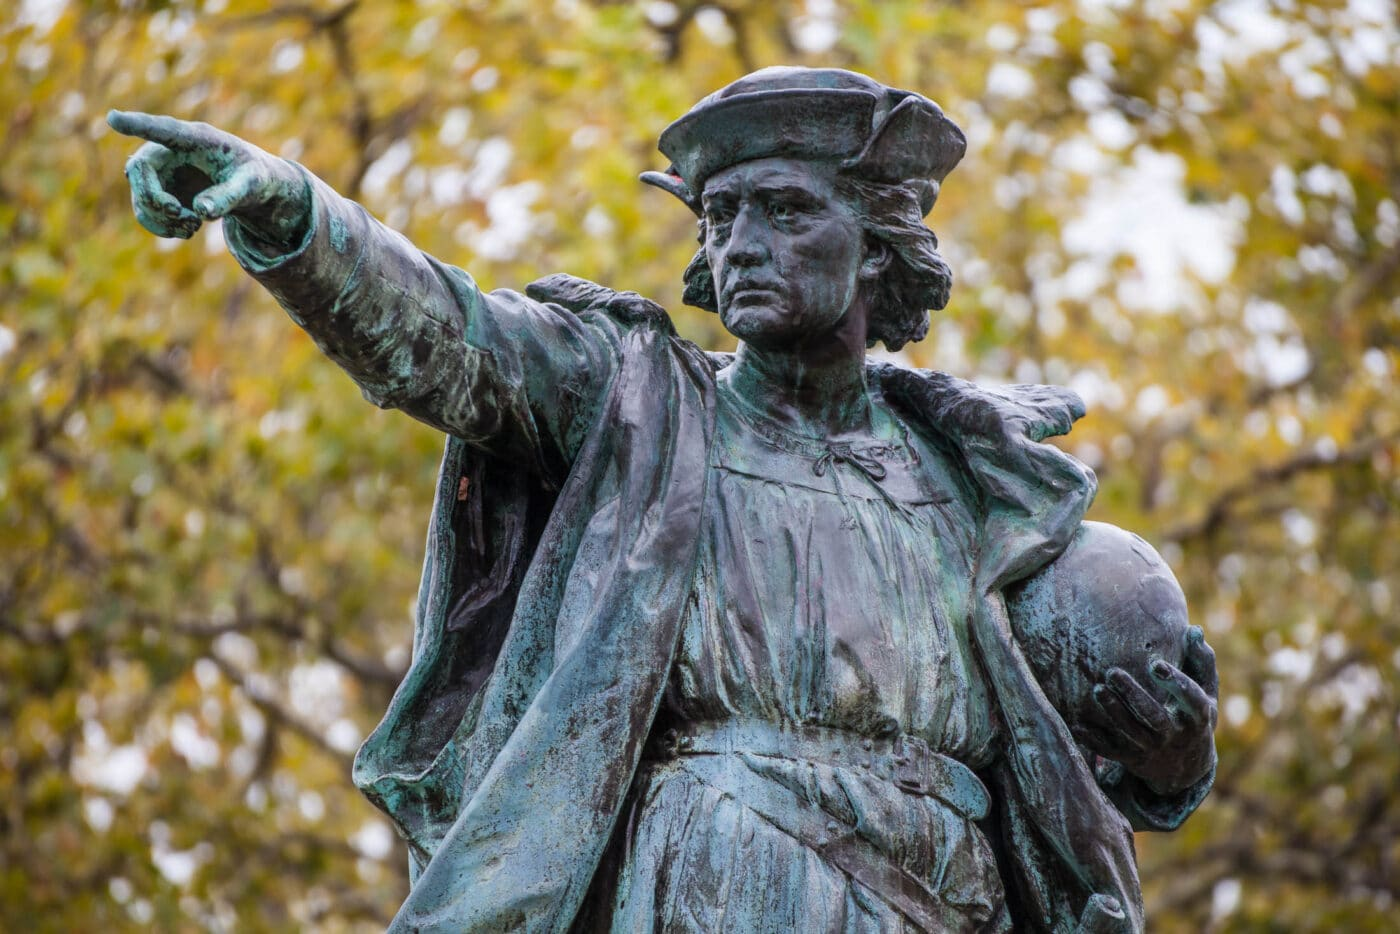 Commemorative Works Committee recommends permanent removal of Columbus statue